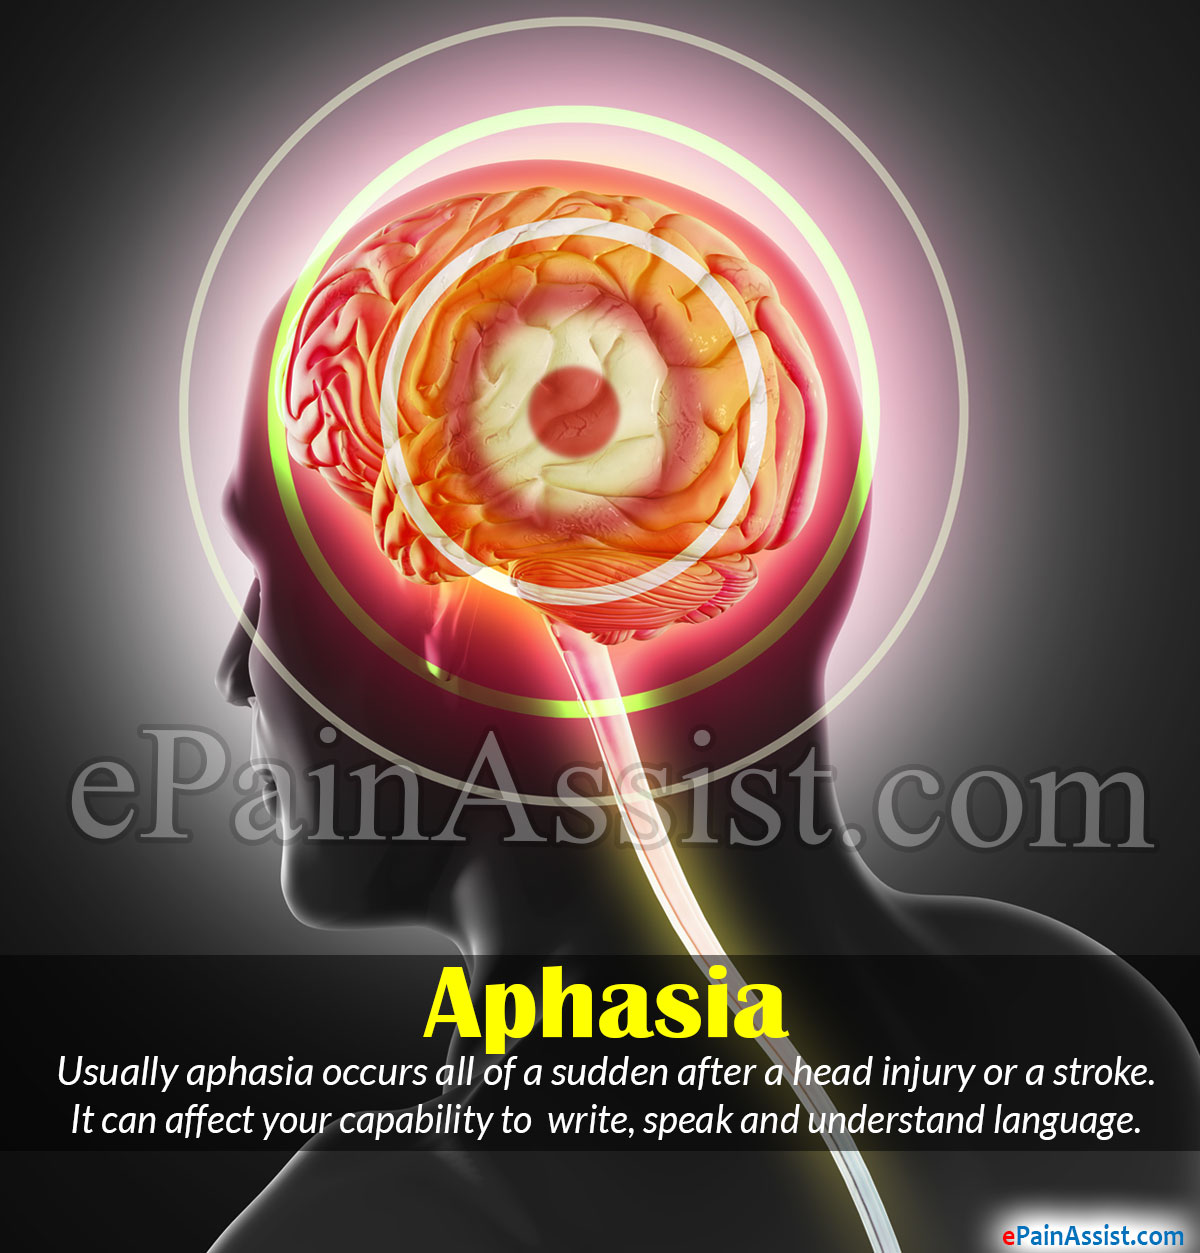 What is the Definition of Aphasia